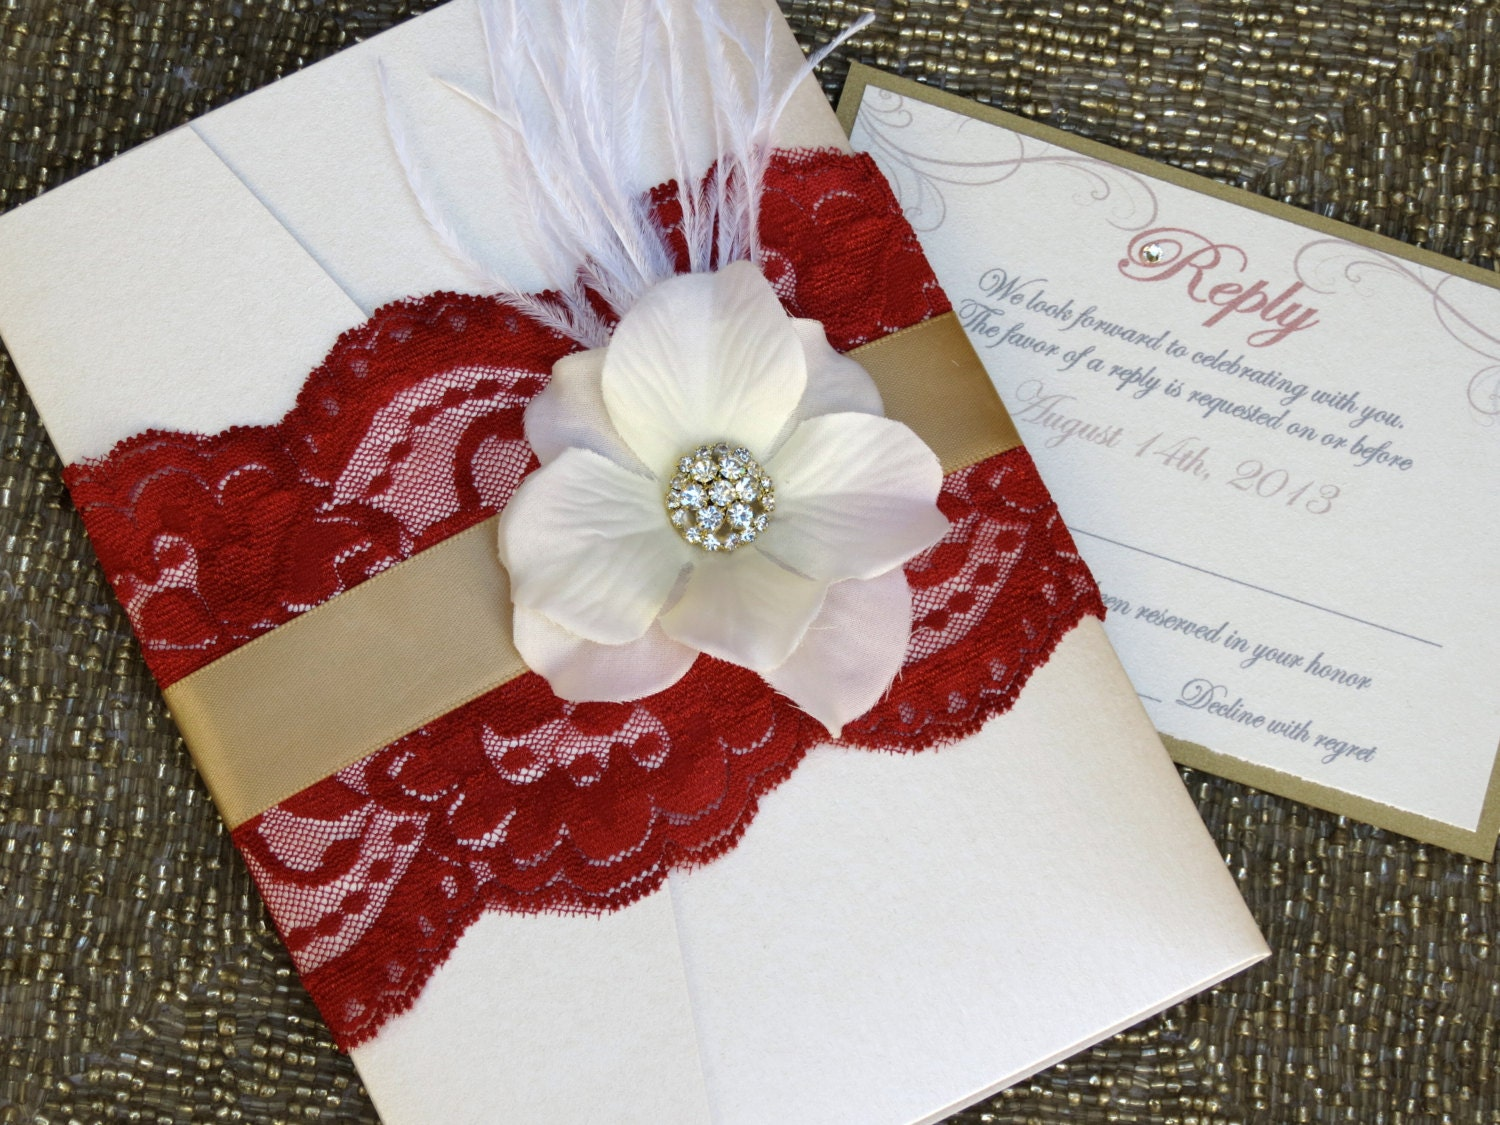 red and gold wedding invitations - Wedding Decor Ideas